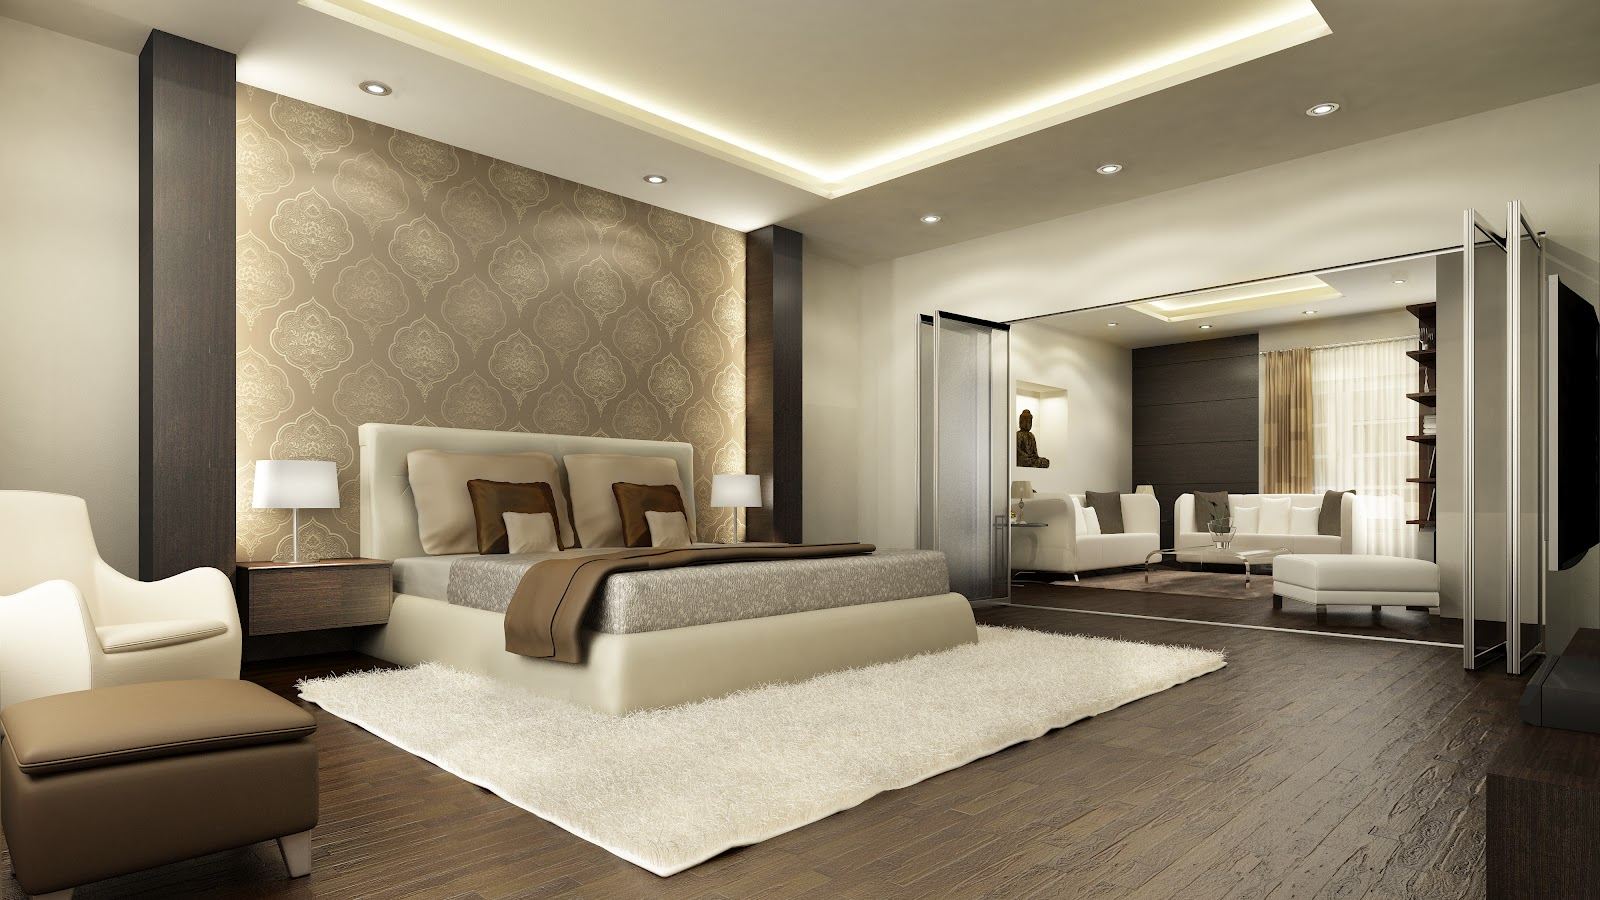 10 most popular master bedroom designs for 2014 qnud for Contemporary master bedroom designs